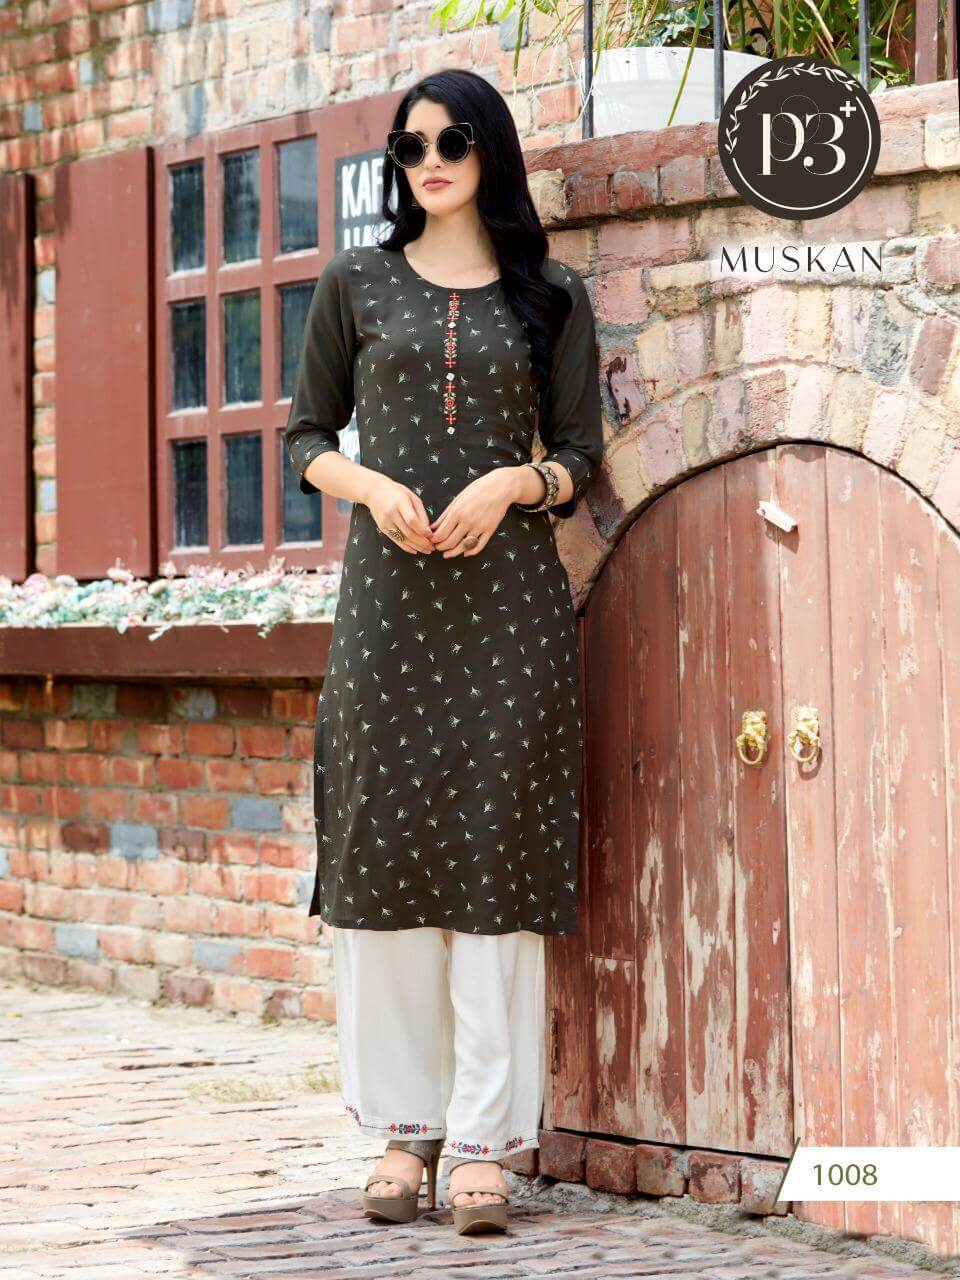 P3 Muskan collection 4